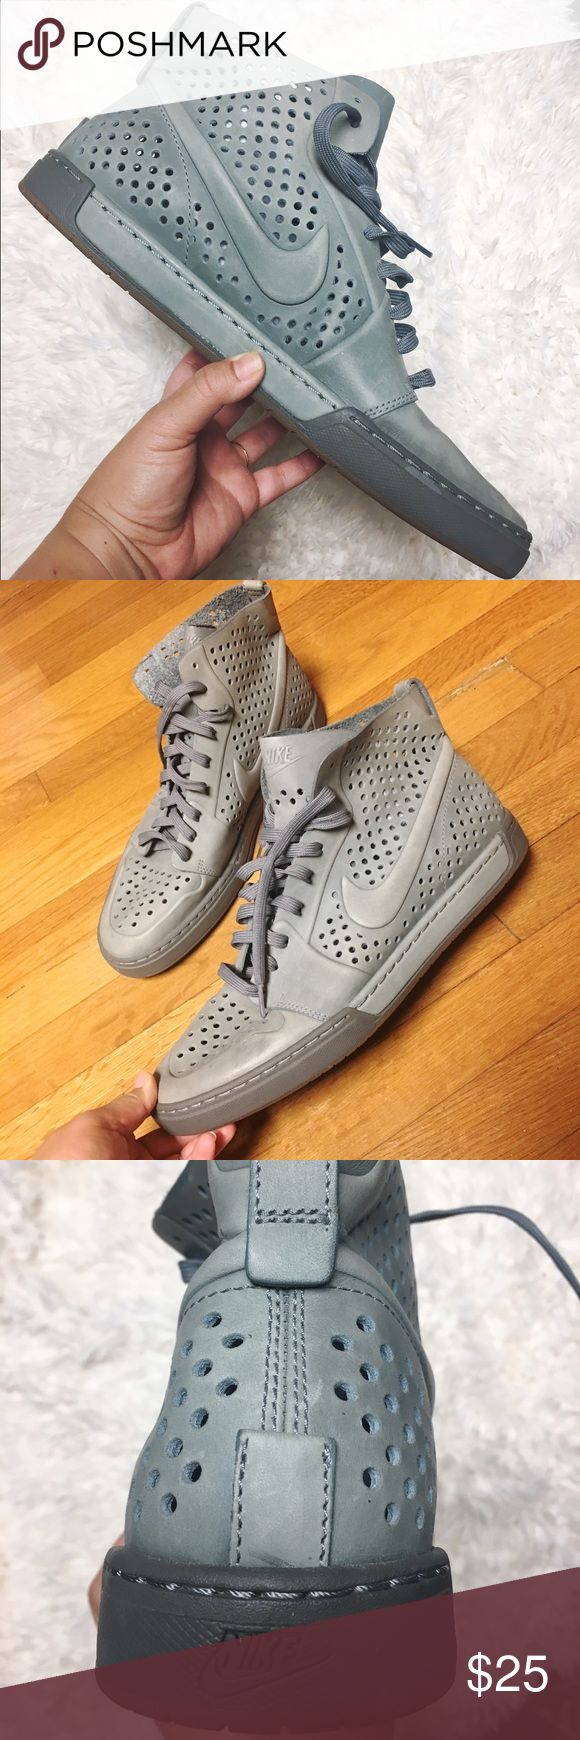 Rare Nike Men's High Top Basketball Shoes Grey rubber soles and and eyelet design. Rare swag-y shoe. Never worn, super clean, light fading. Nike Shoes Athletic Shoes